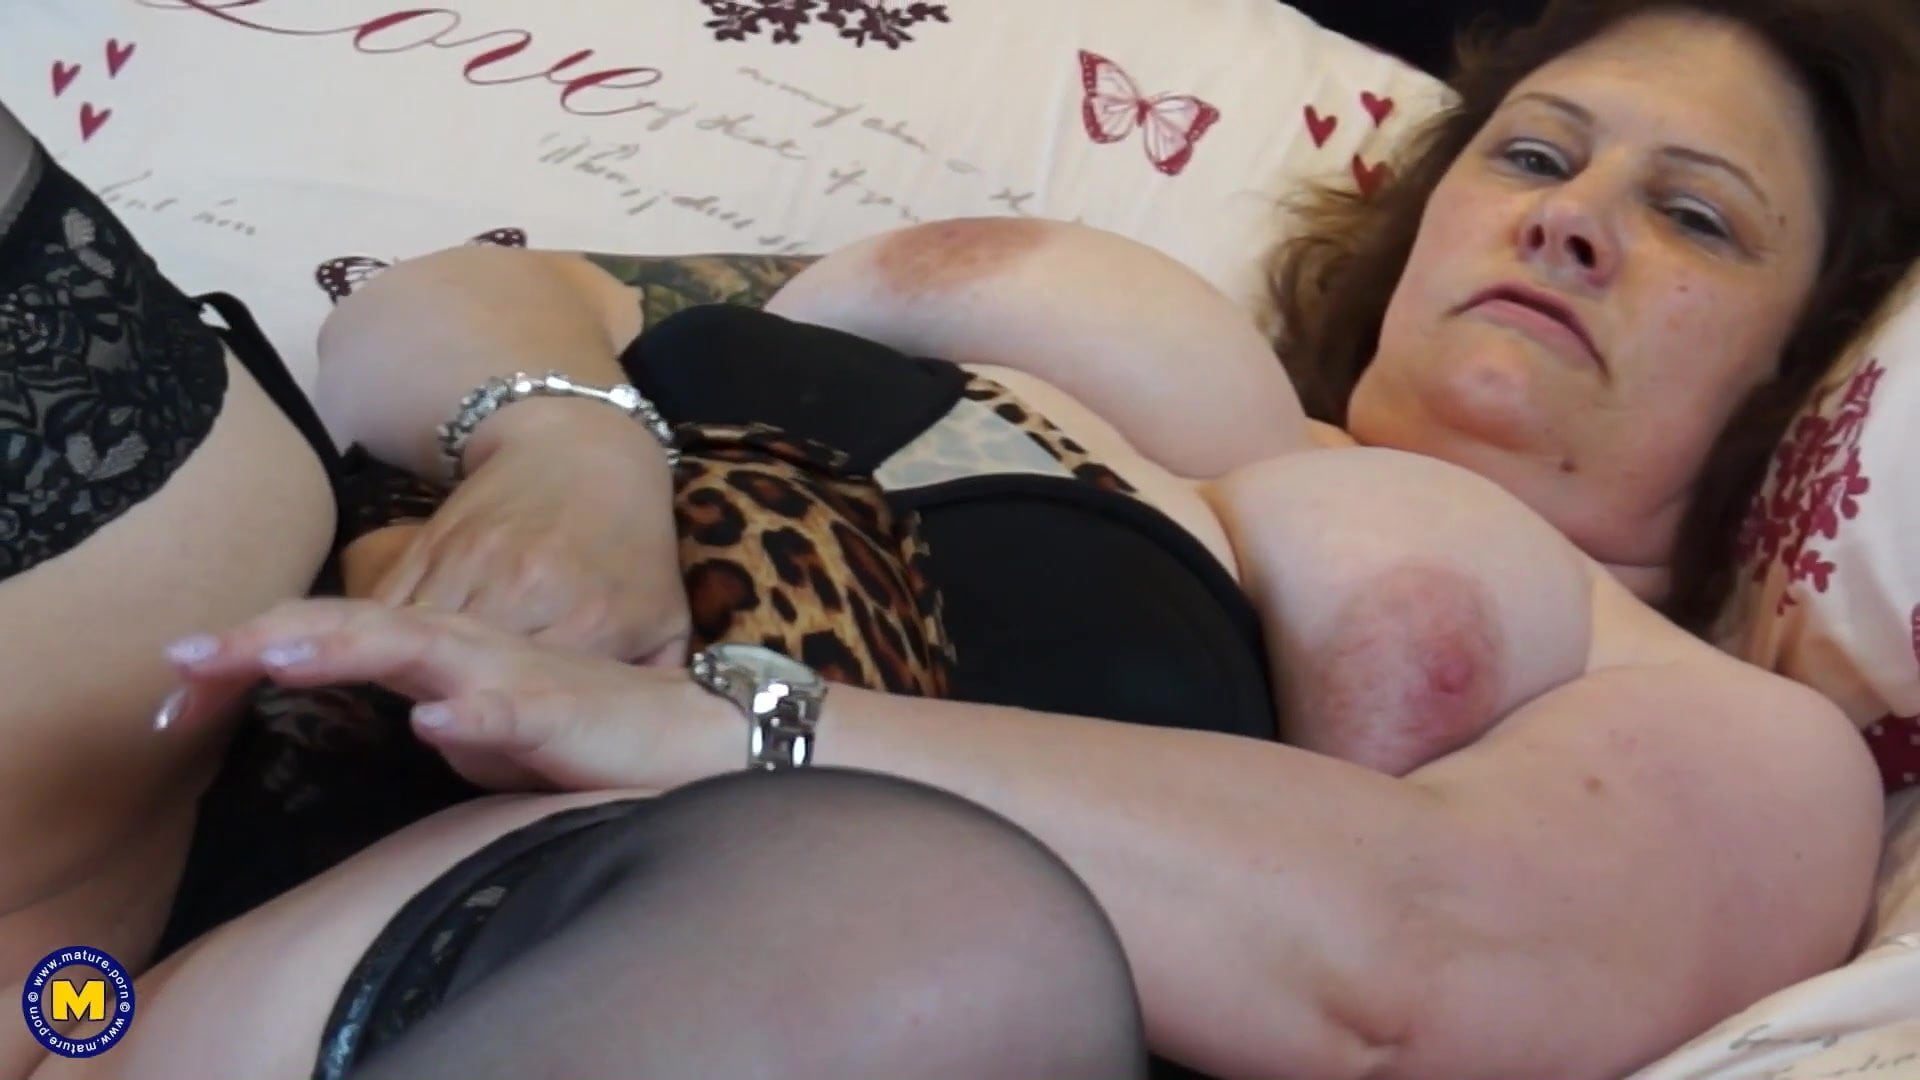 Real Mature Mother With Big Tits And Wet Pussy Hd Porn 70-4108